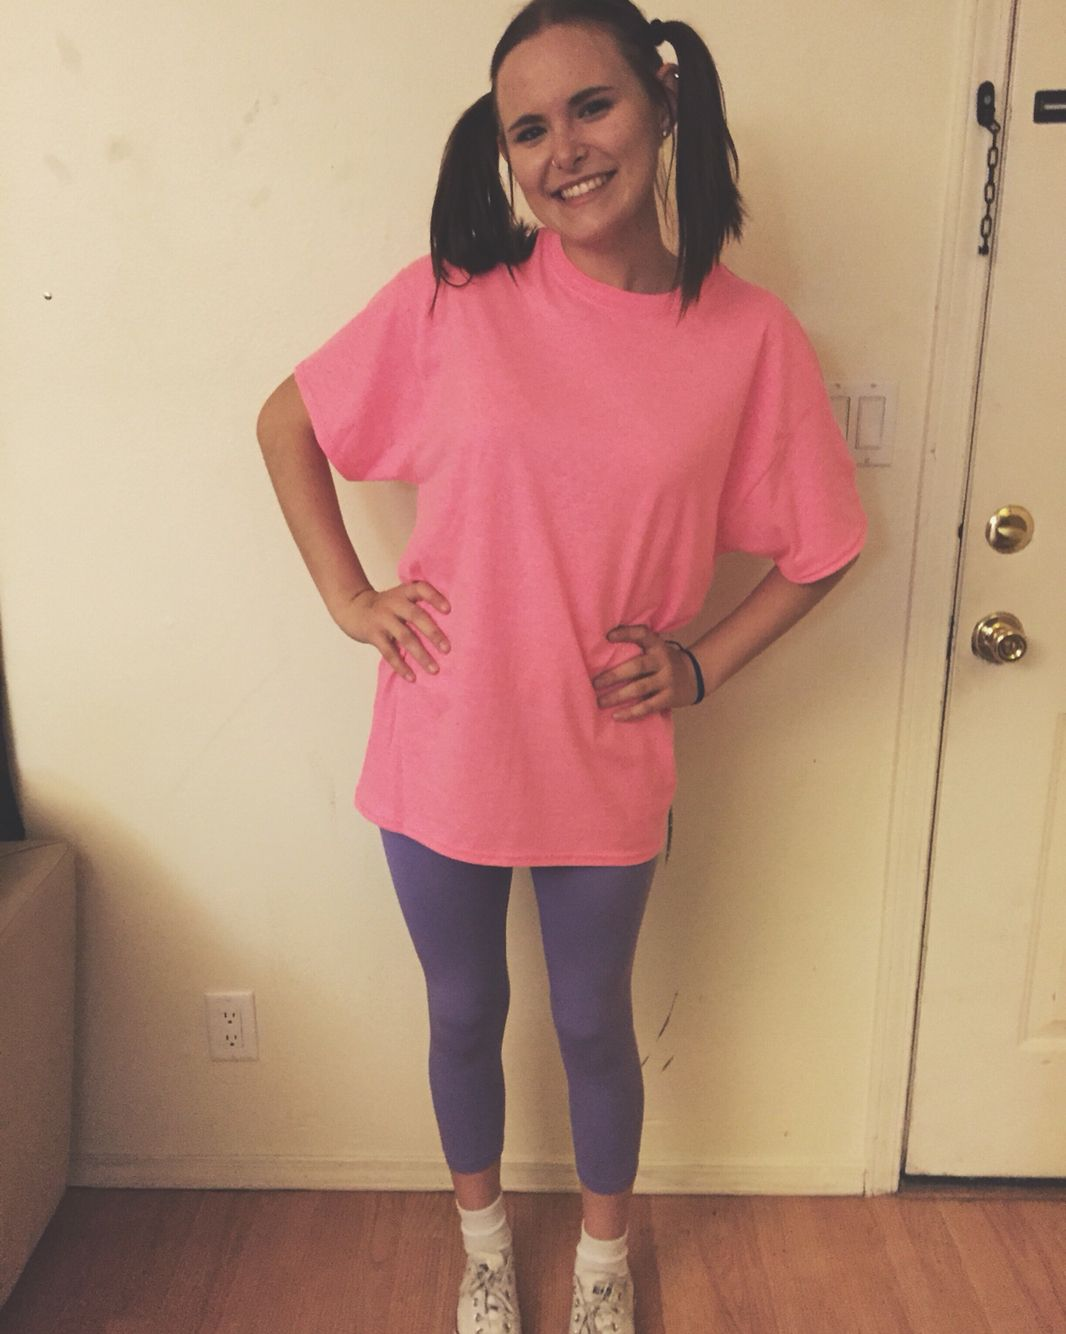 Boo from Monsters Inc #halloween #costume | Costume Party ...